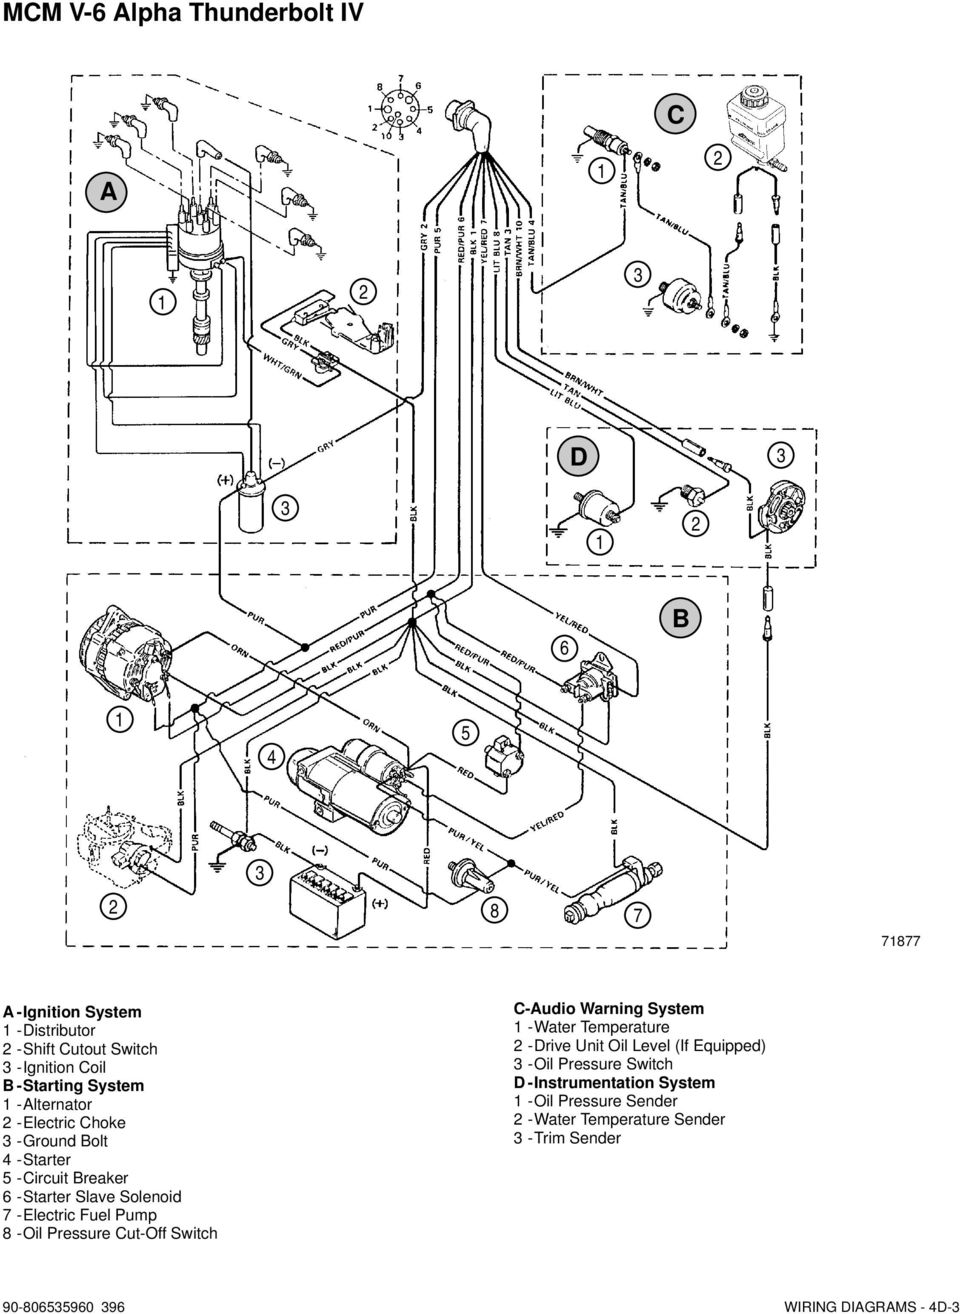 Electrical Systems Wiring Diagrams Pdf 1990 Ford 350 Diesel Solenoid Oil Pressure Ut Off Switch Udio Warning System Water Temperature Drive